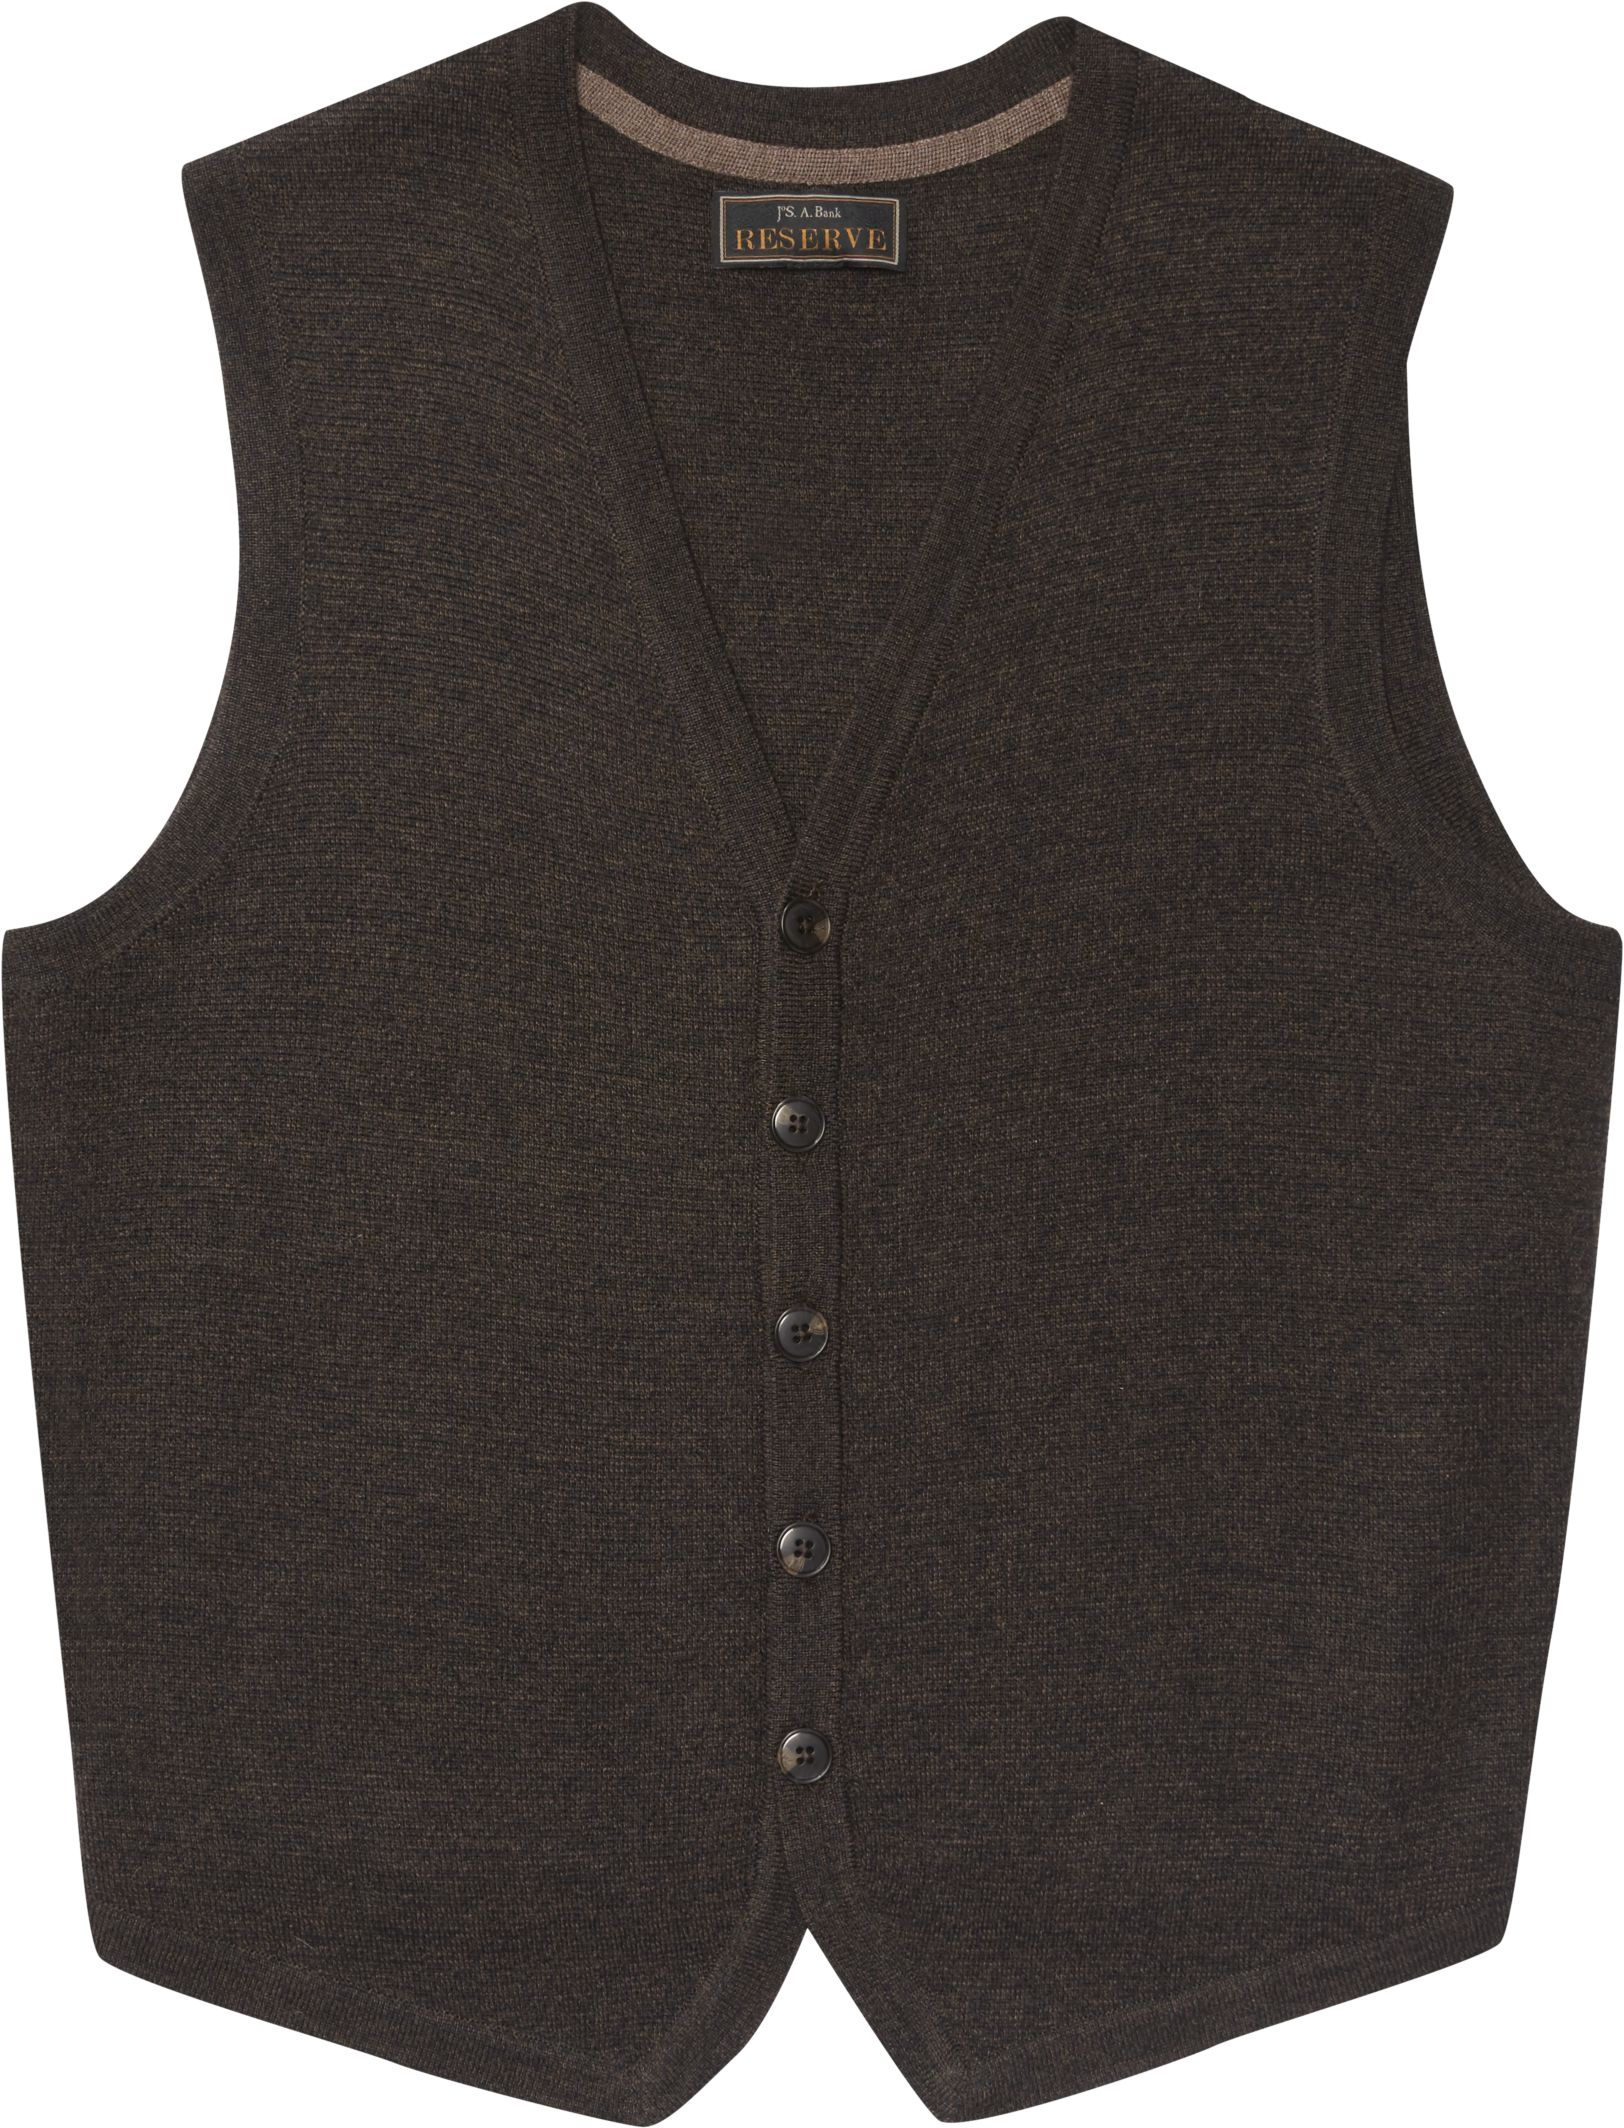 Reserve Collection Button Front Sweater Vest Big and Tall ...